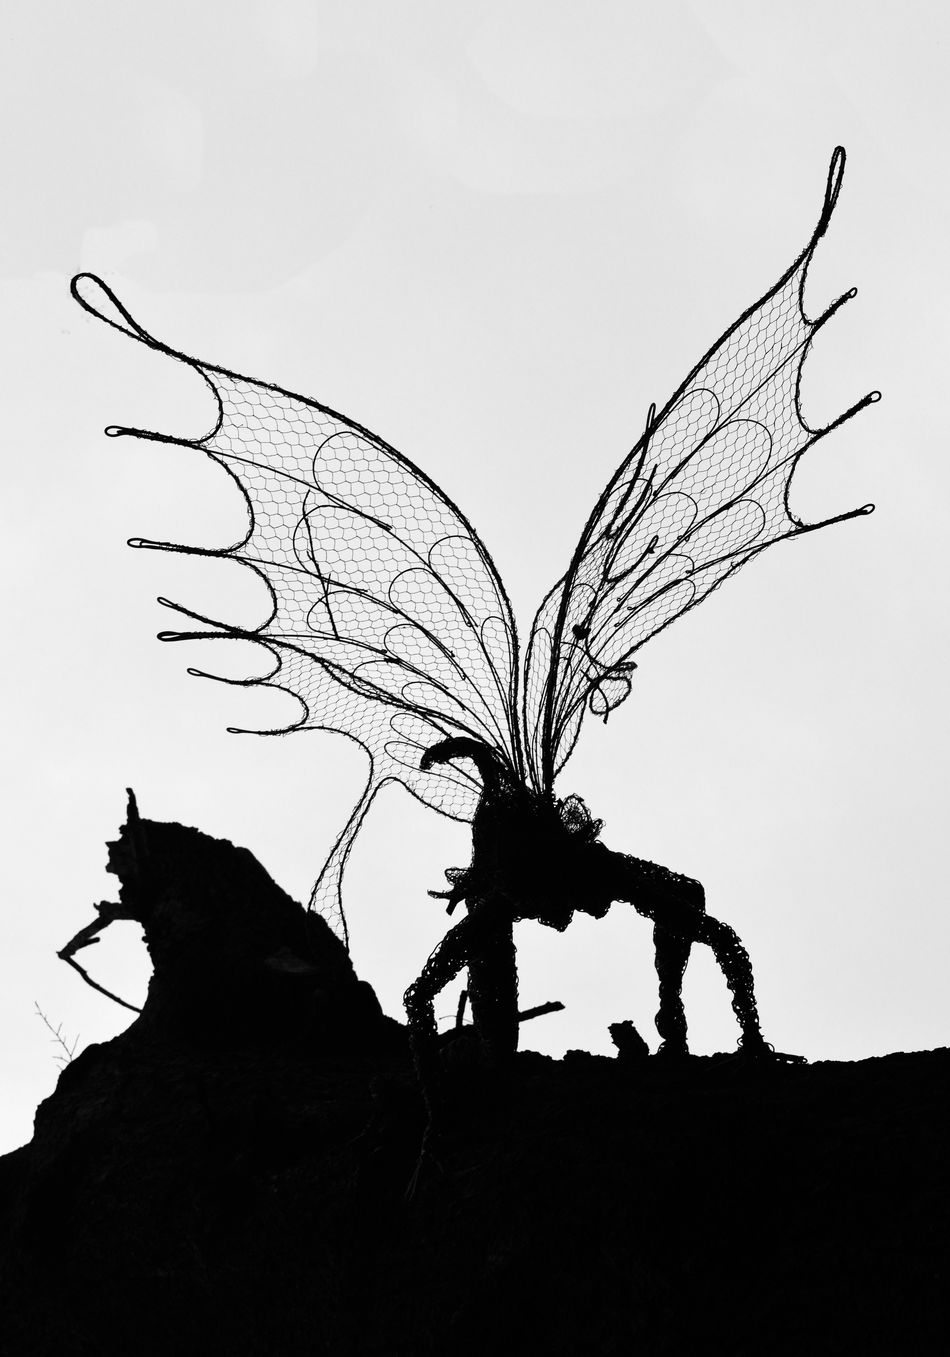 Beauty In Nature Black And White Close-up Fairy Fairy Wings Filligre Focus On Foreground Low Angle View Nature No People Outdoors Silhouette Simplicity Sky Tranquility Tree Fairy Twig Vignette Wings Wood Sprite